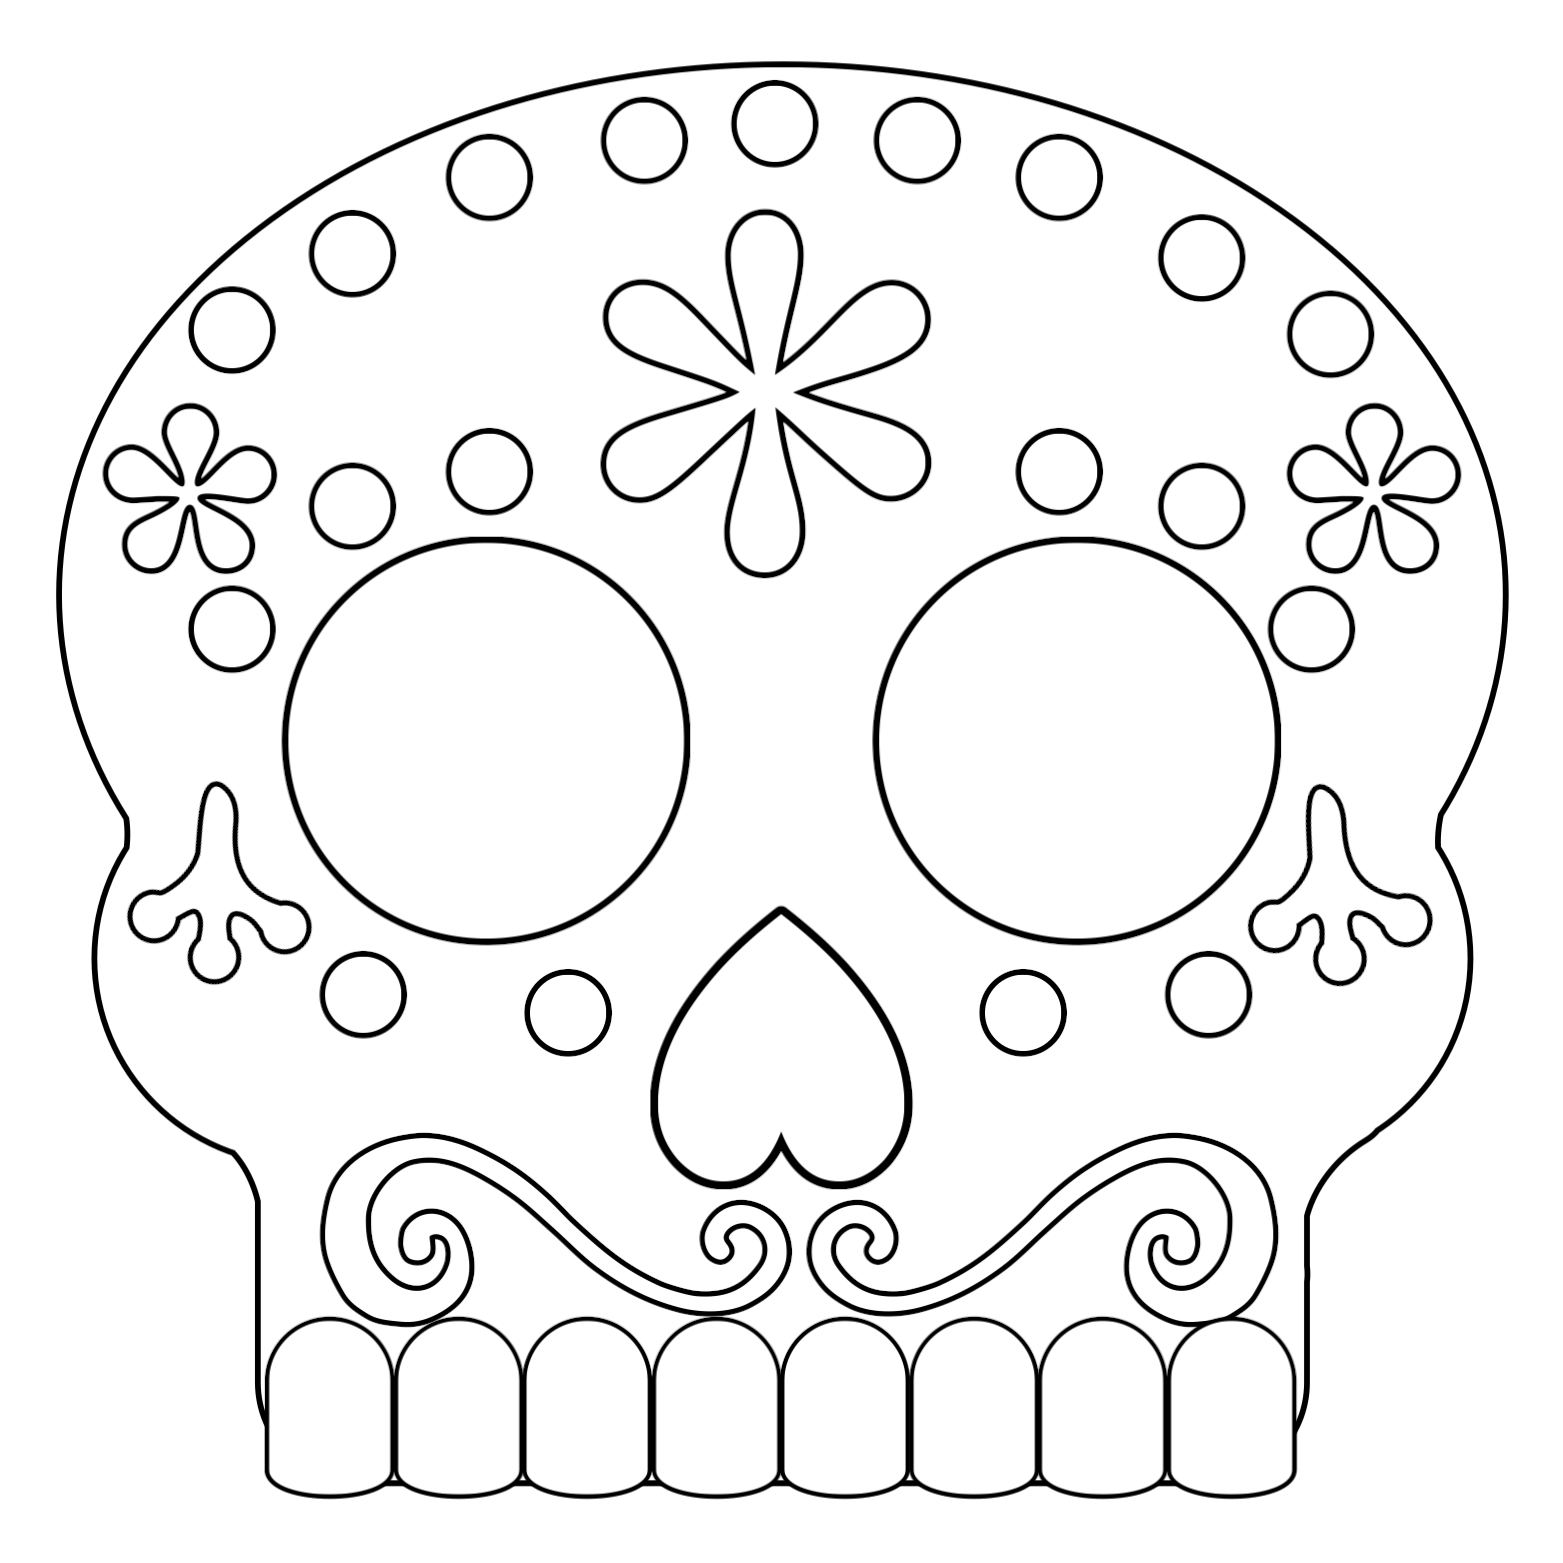 photo regarding Sugar Skull Printable titled Working day of the Lifeless Masks Sugar Skulls Cost-free Printable - Paper